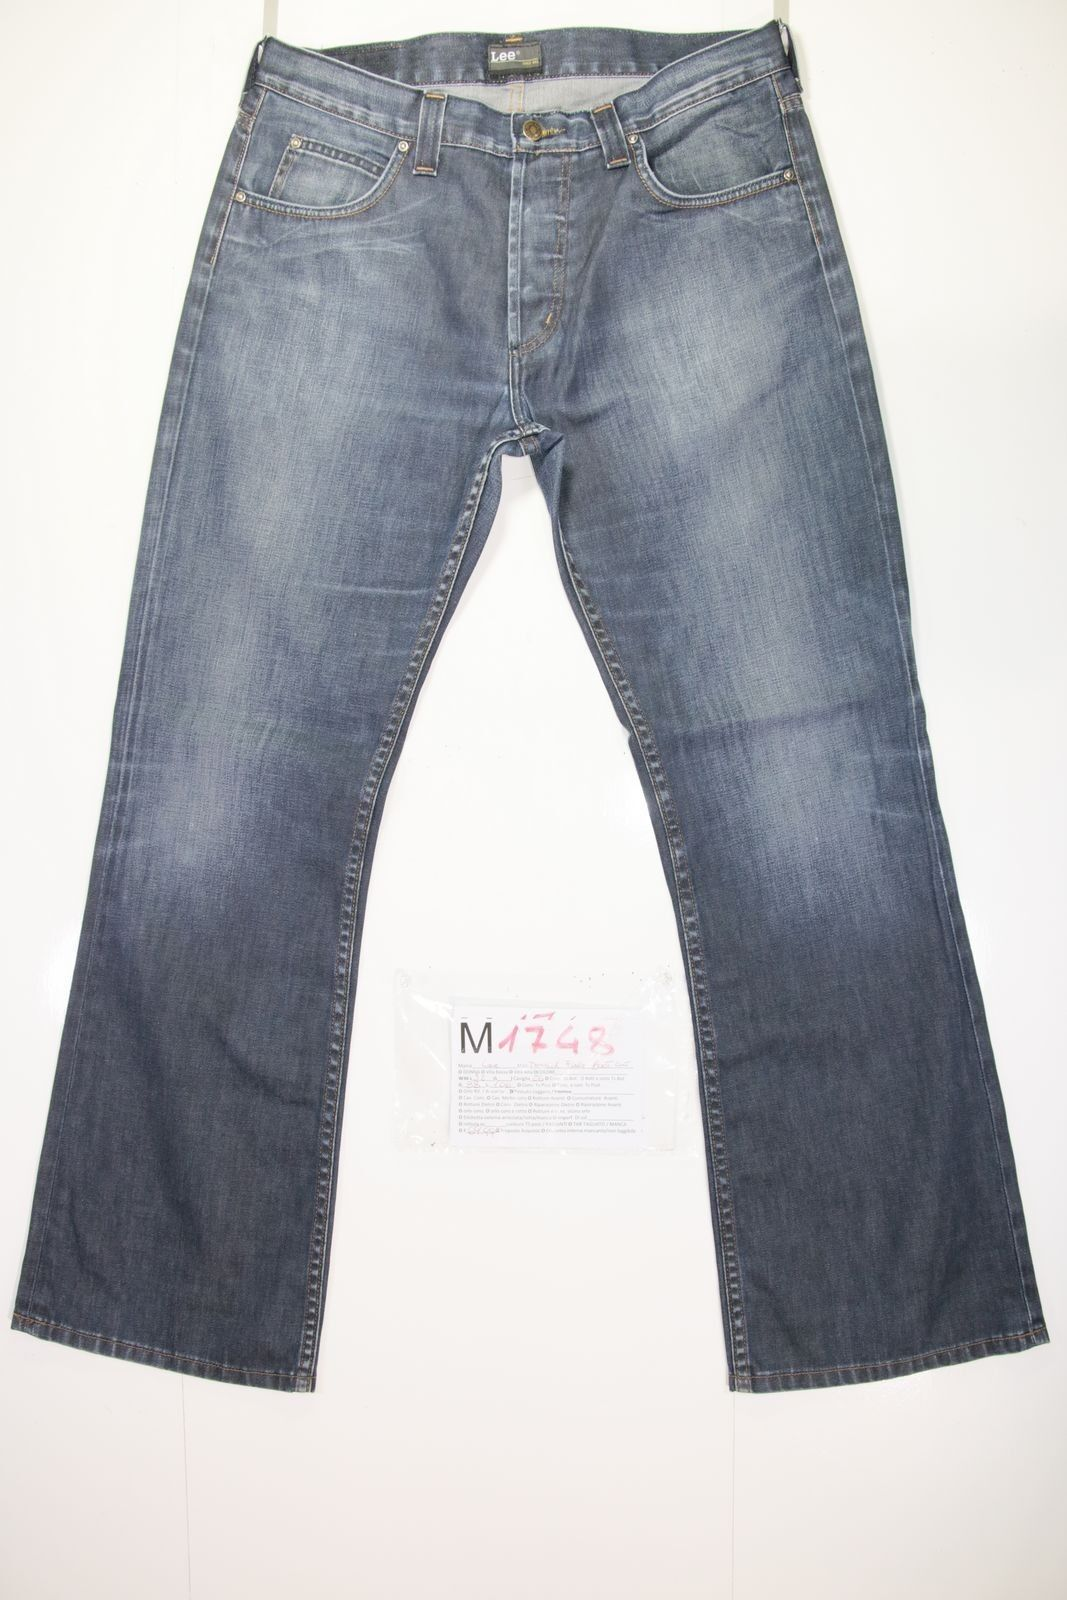 Lee Denver Flare Bootcut ( Cod. M1748) Tg50 W36 L32 Jeans Used High Waisted